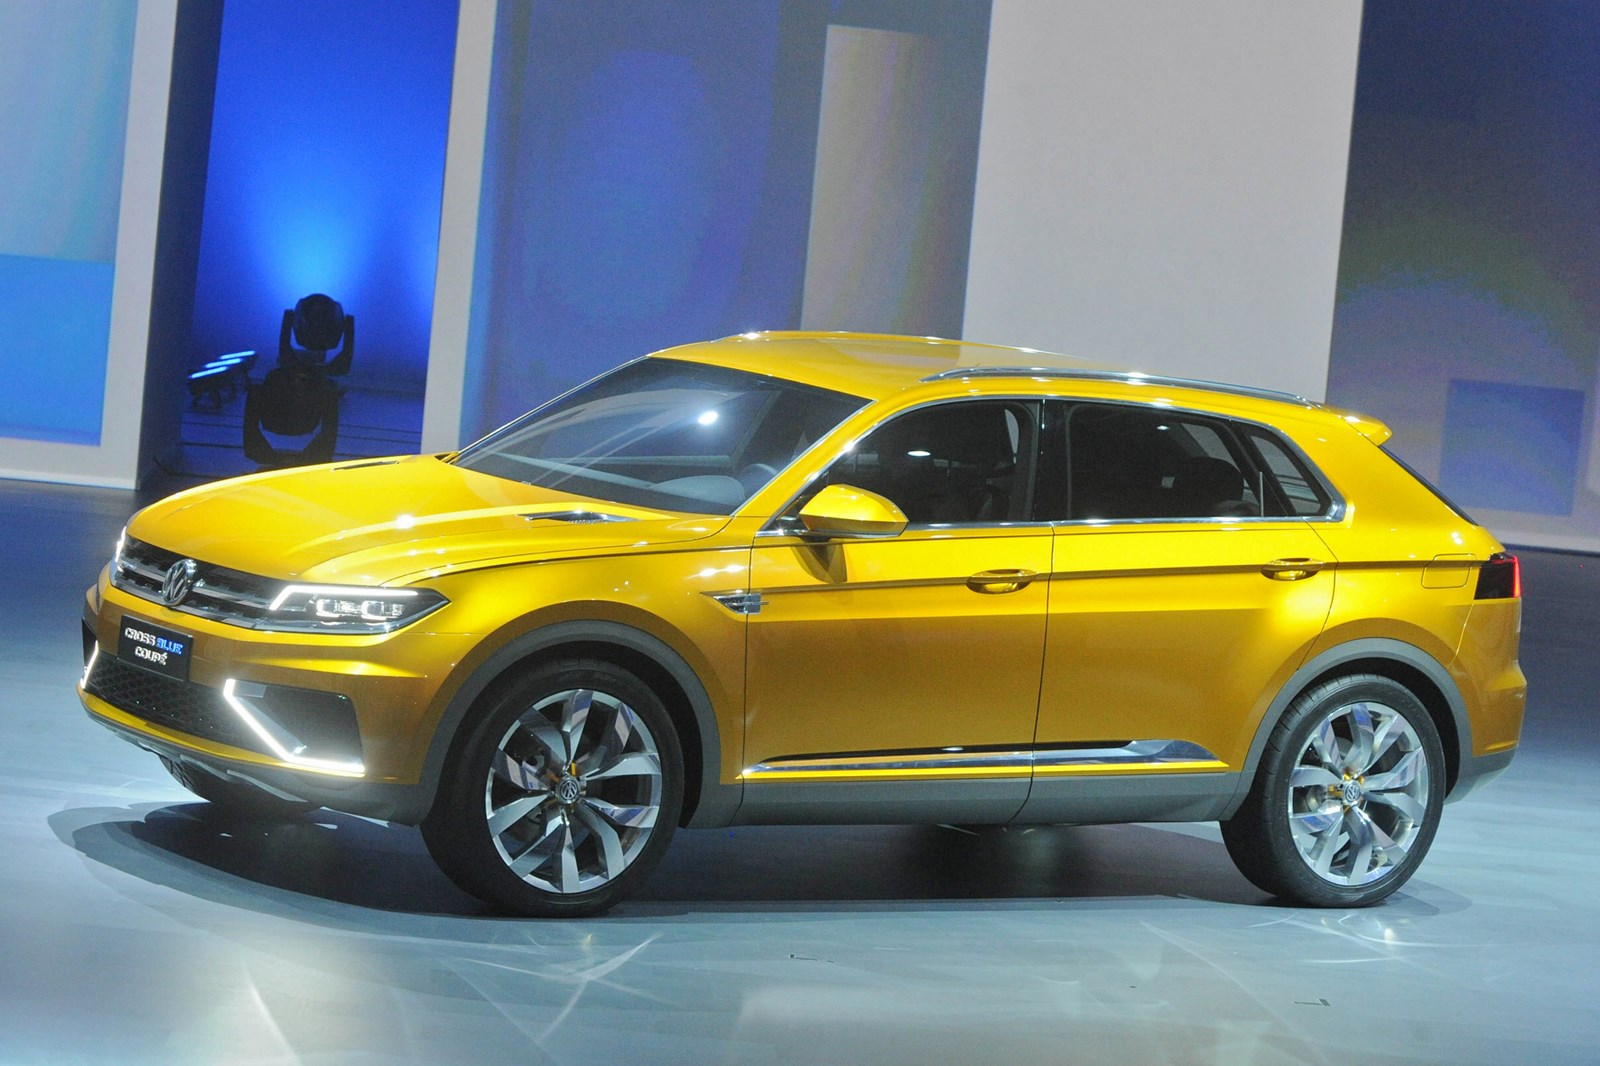 2018 Volkswagen CrossBlue Coupe Concept photo - 5